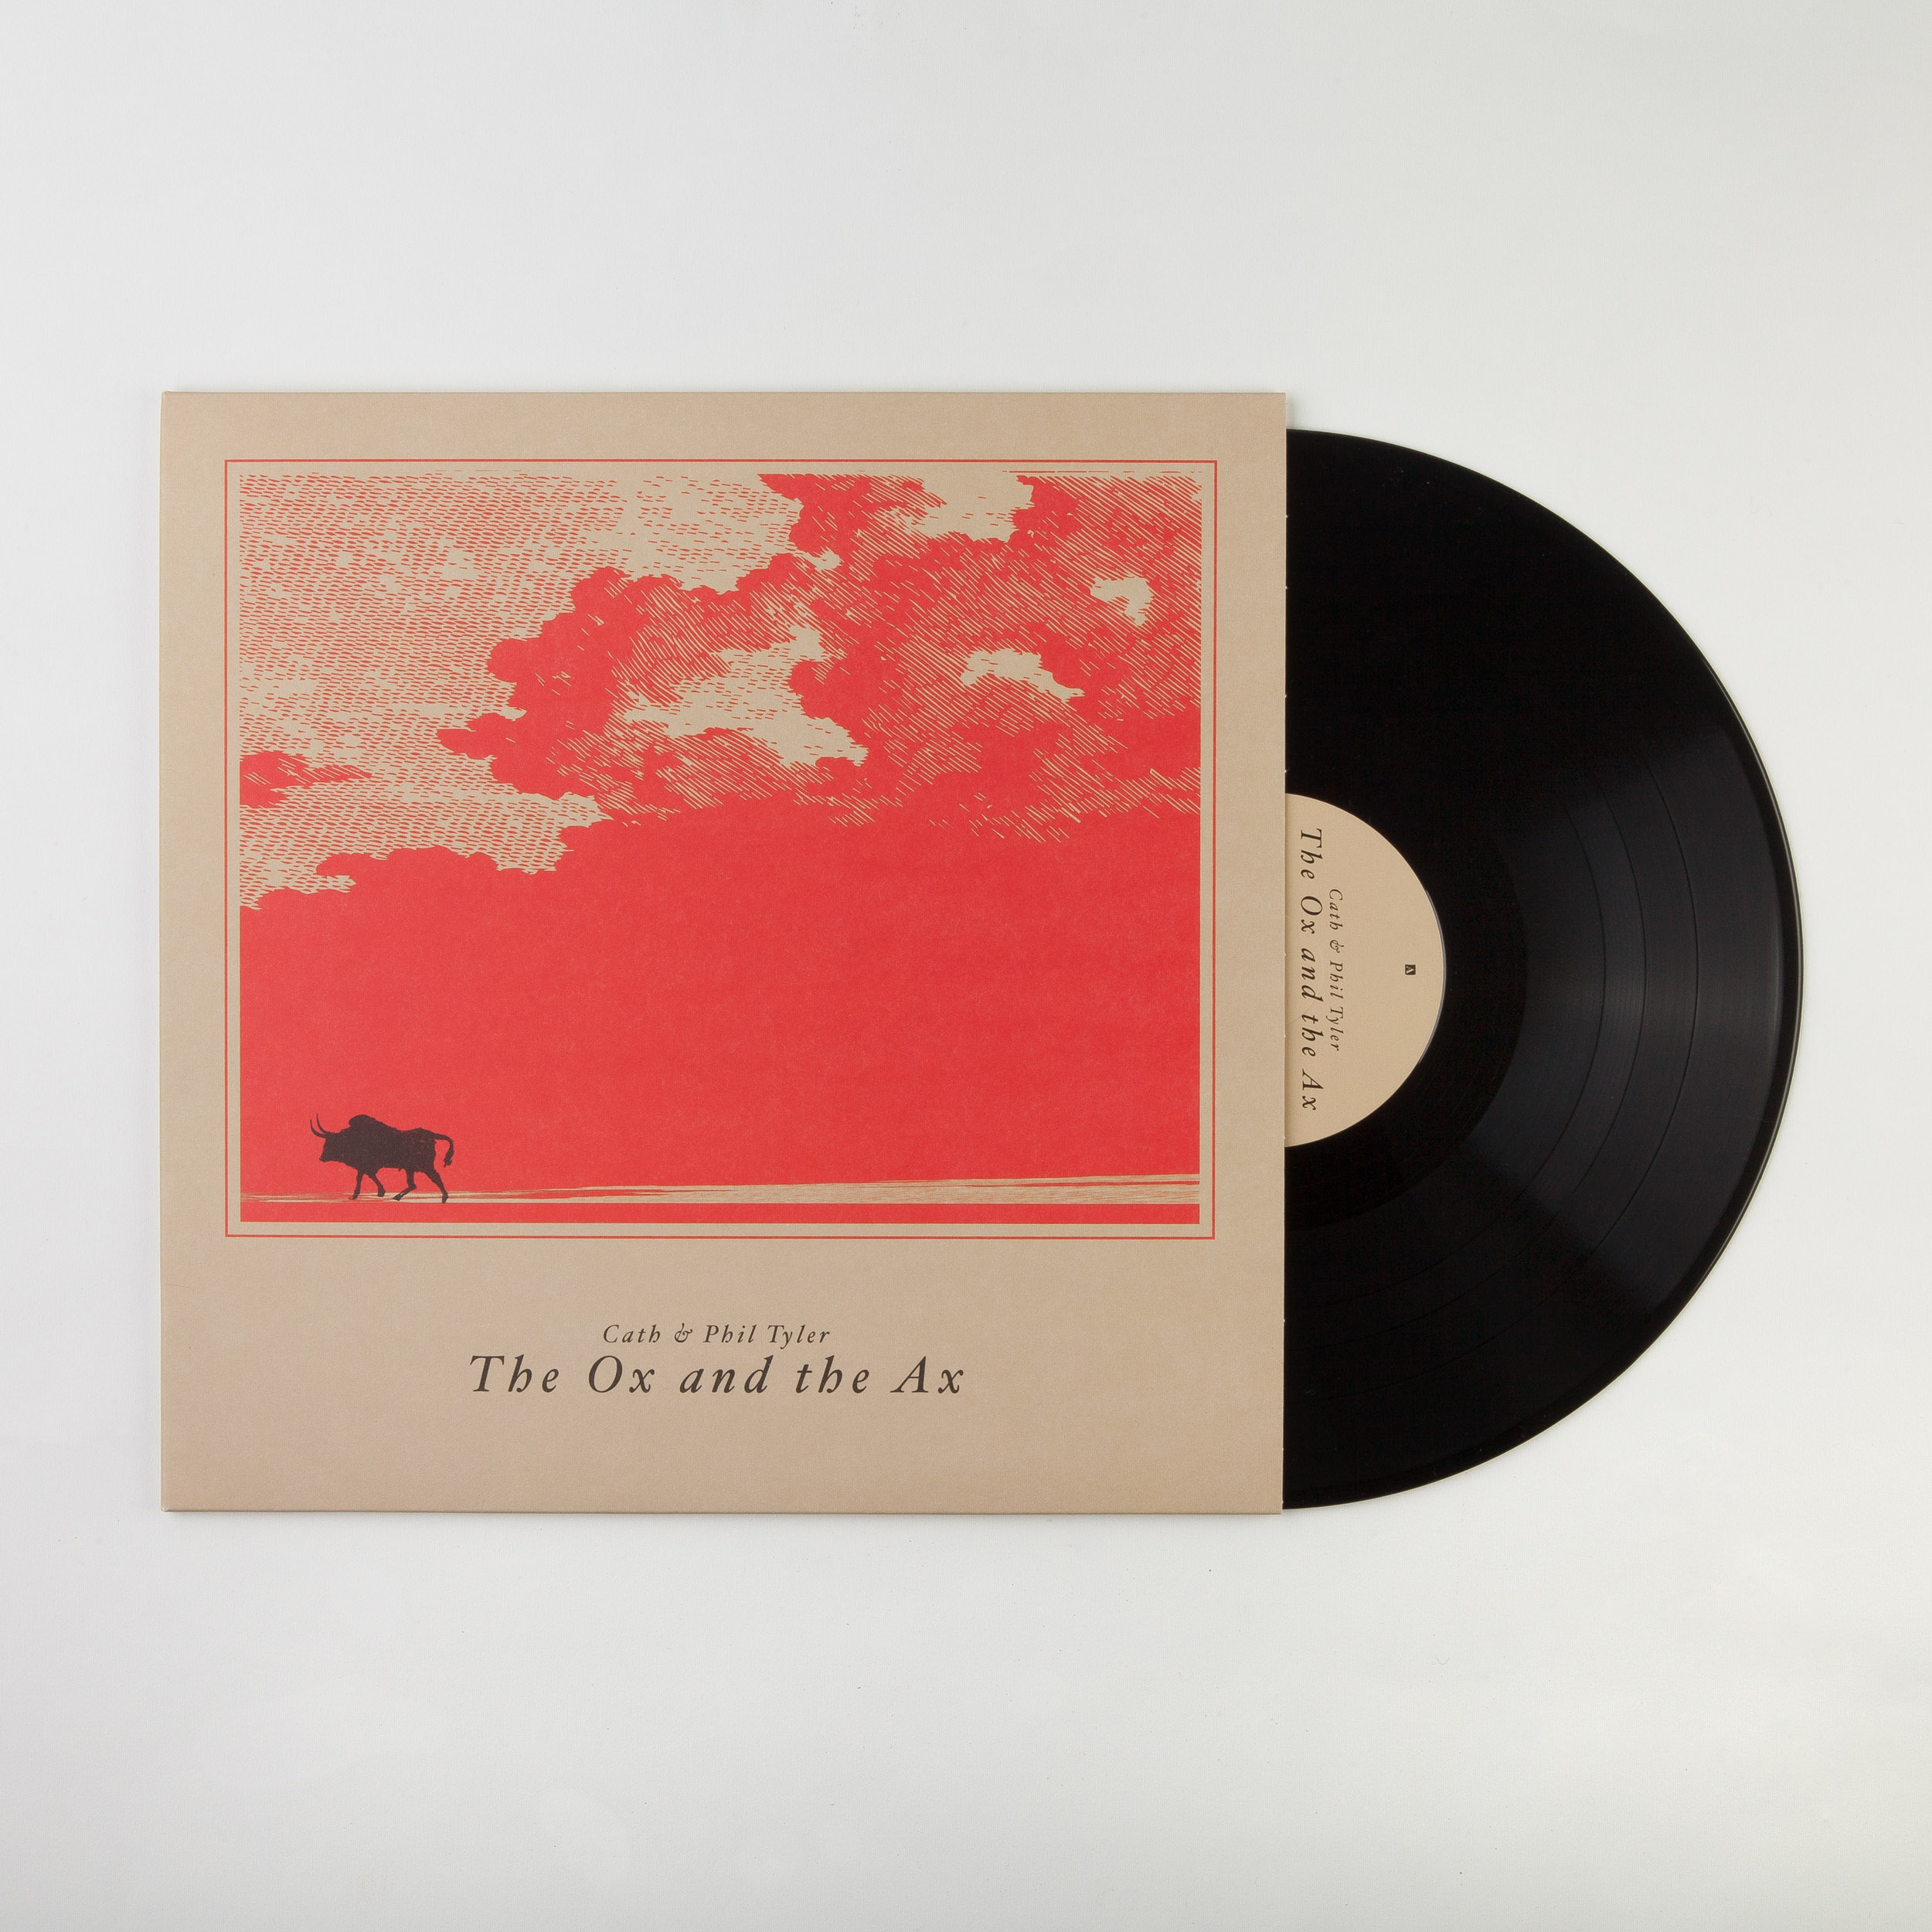 Cath & Phil Tyler – The Ox and the Ax <small>[THR003]</small>